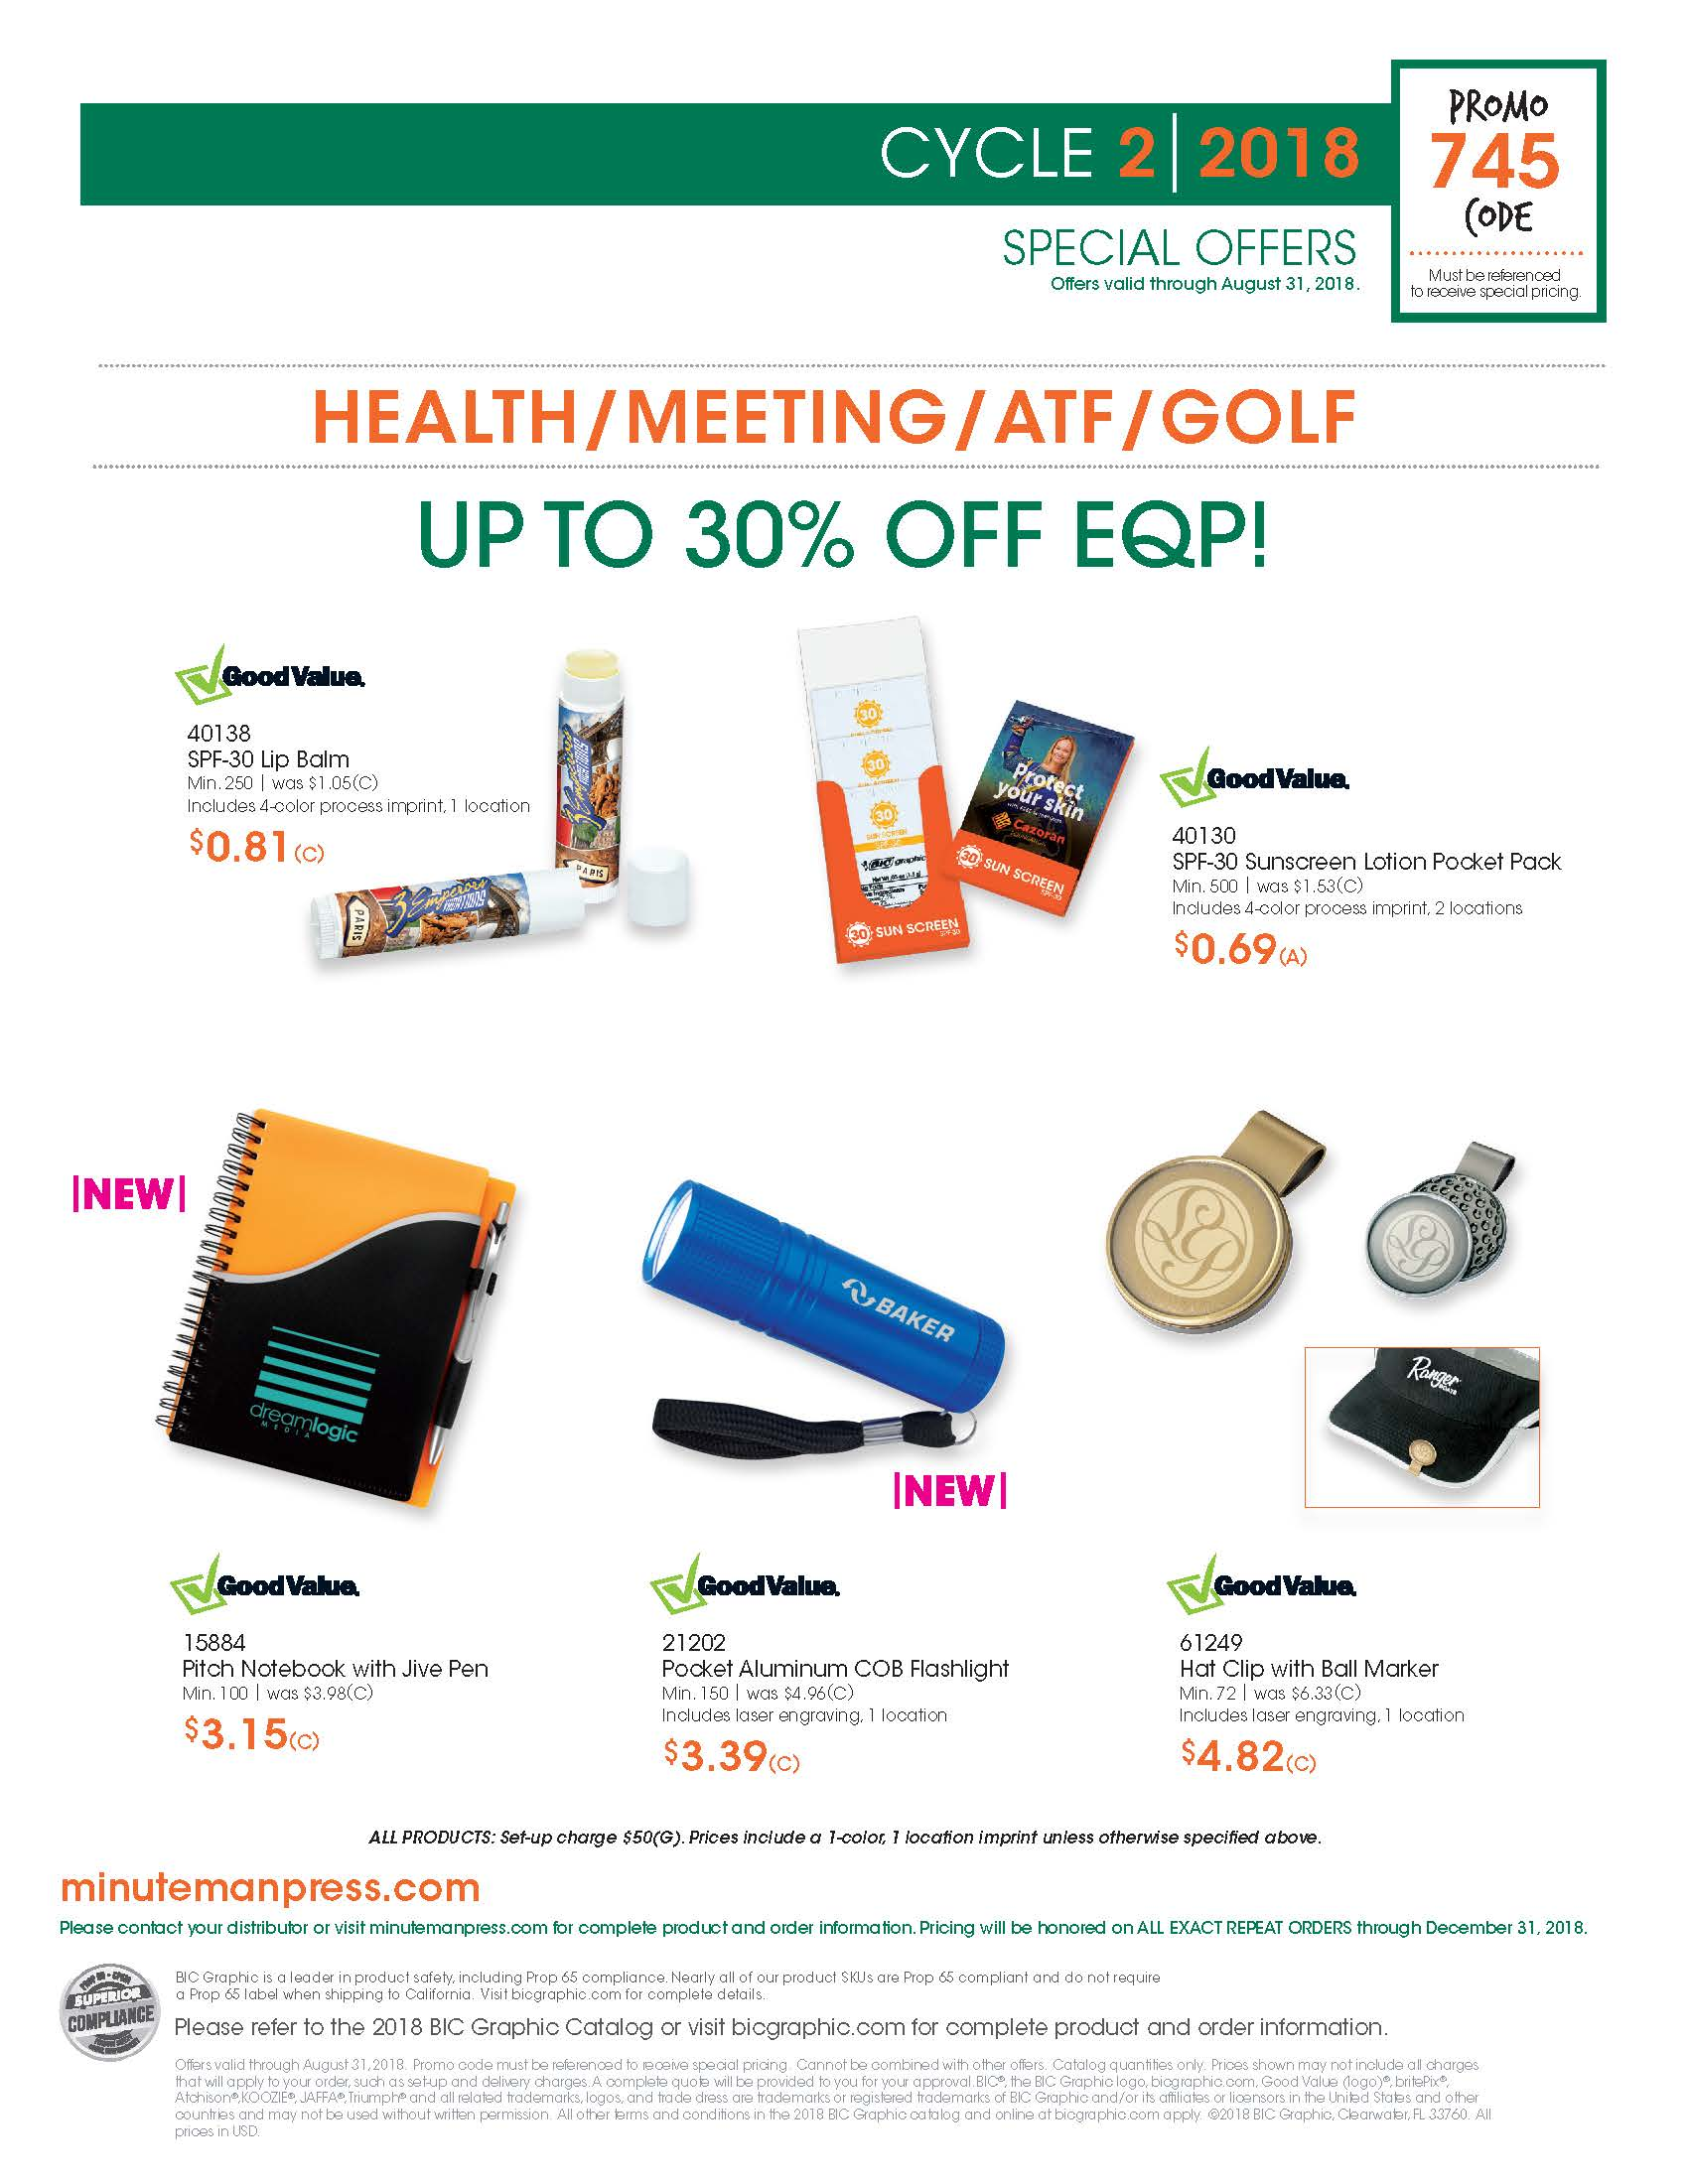 2018 - Cycle 2 Flyer - US - MP Version Folder_Page_10